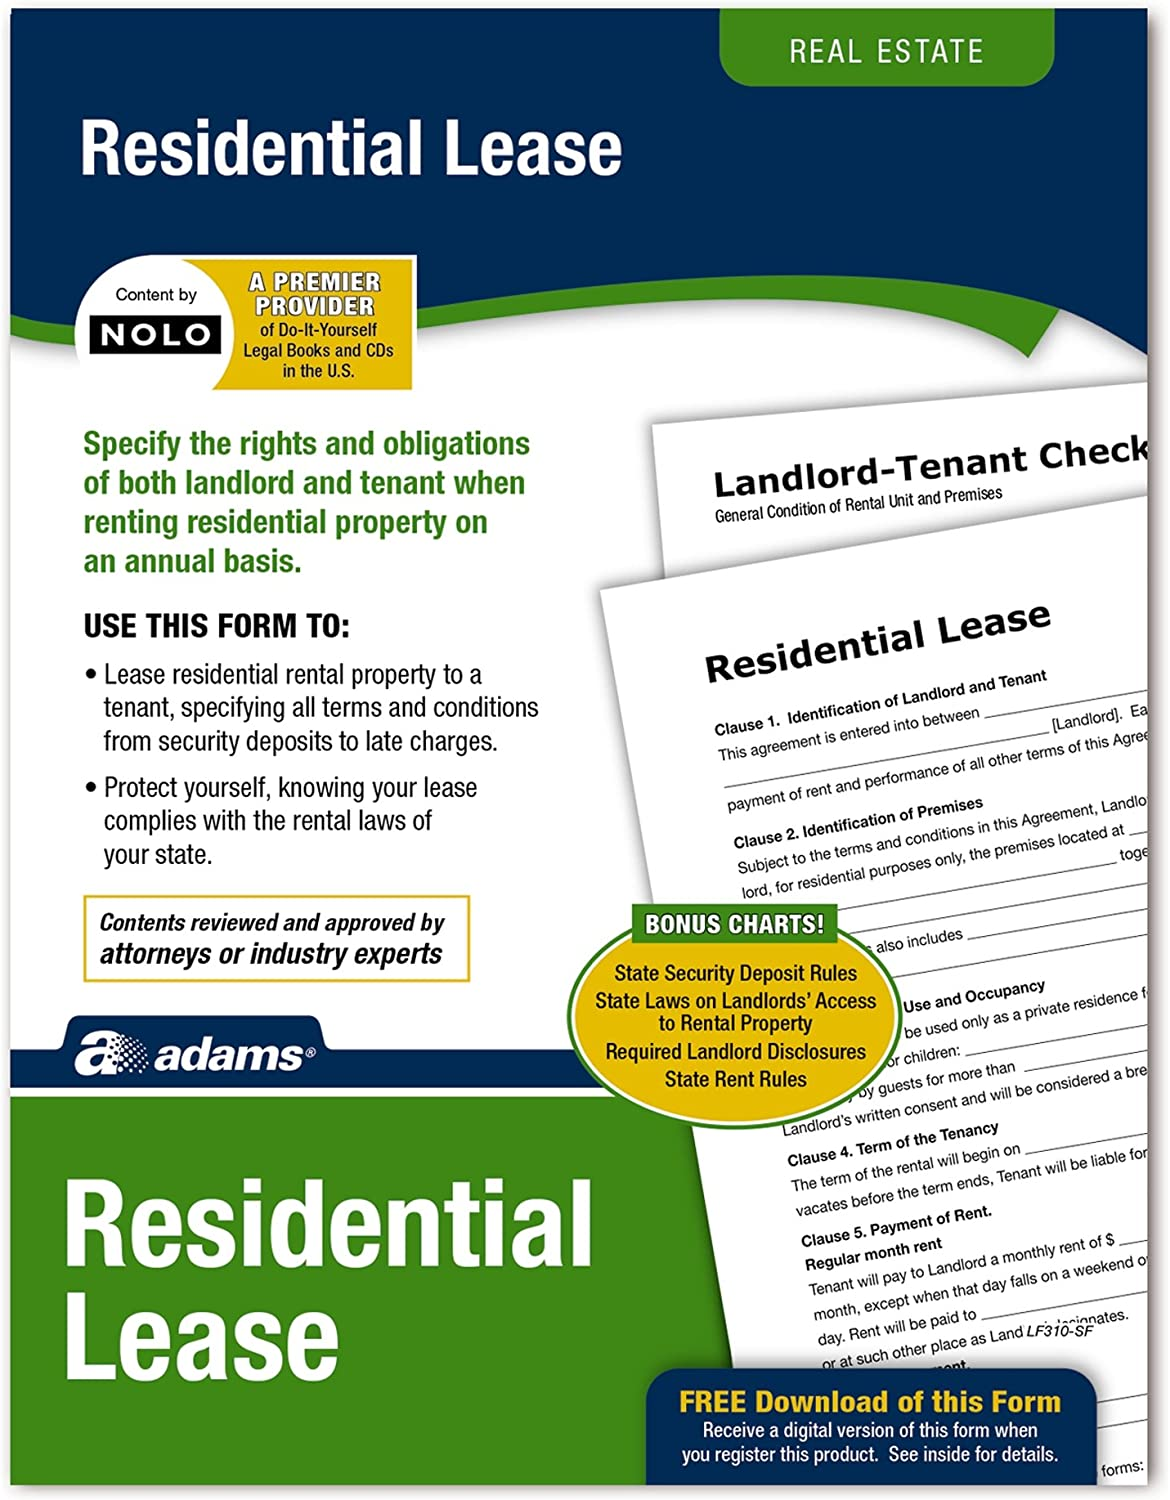 Adams Residential Lease, Forms and Instructions [Print and Downloadable] (LF310)